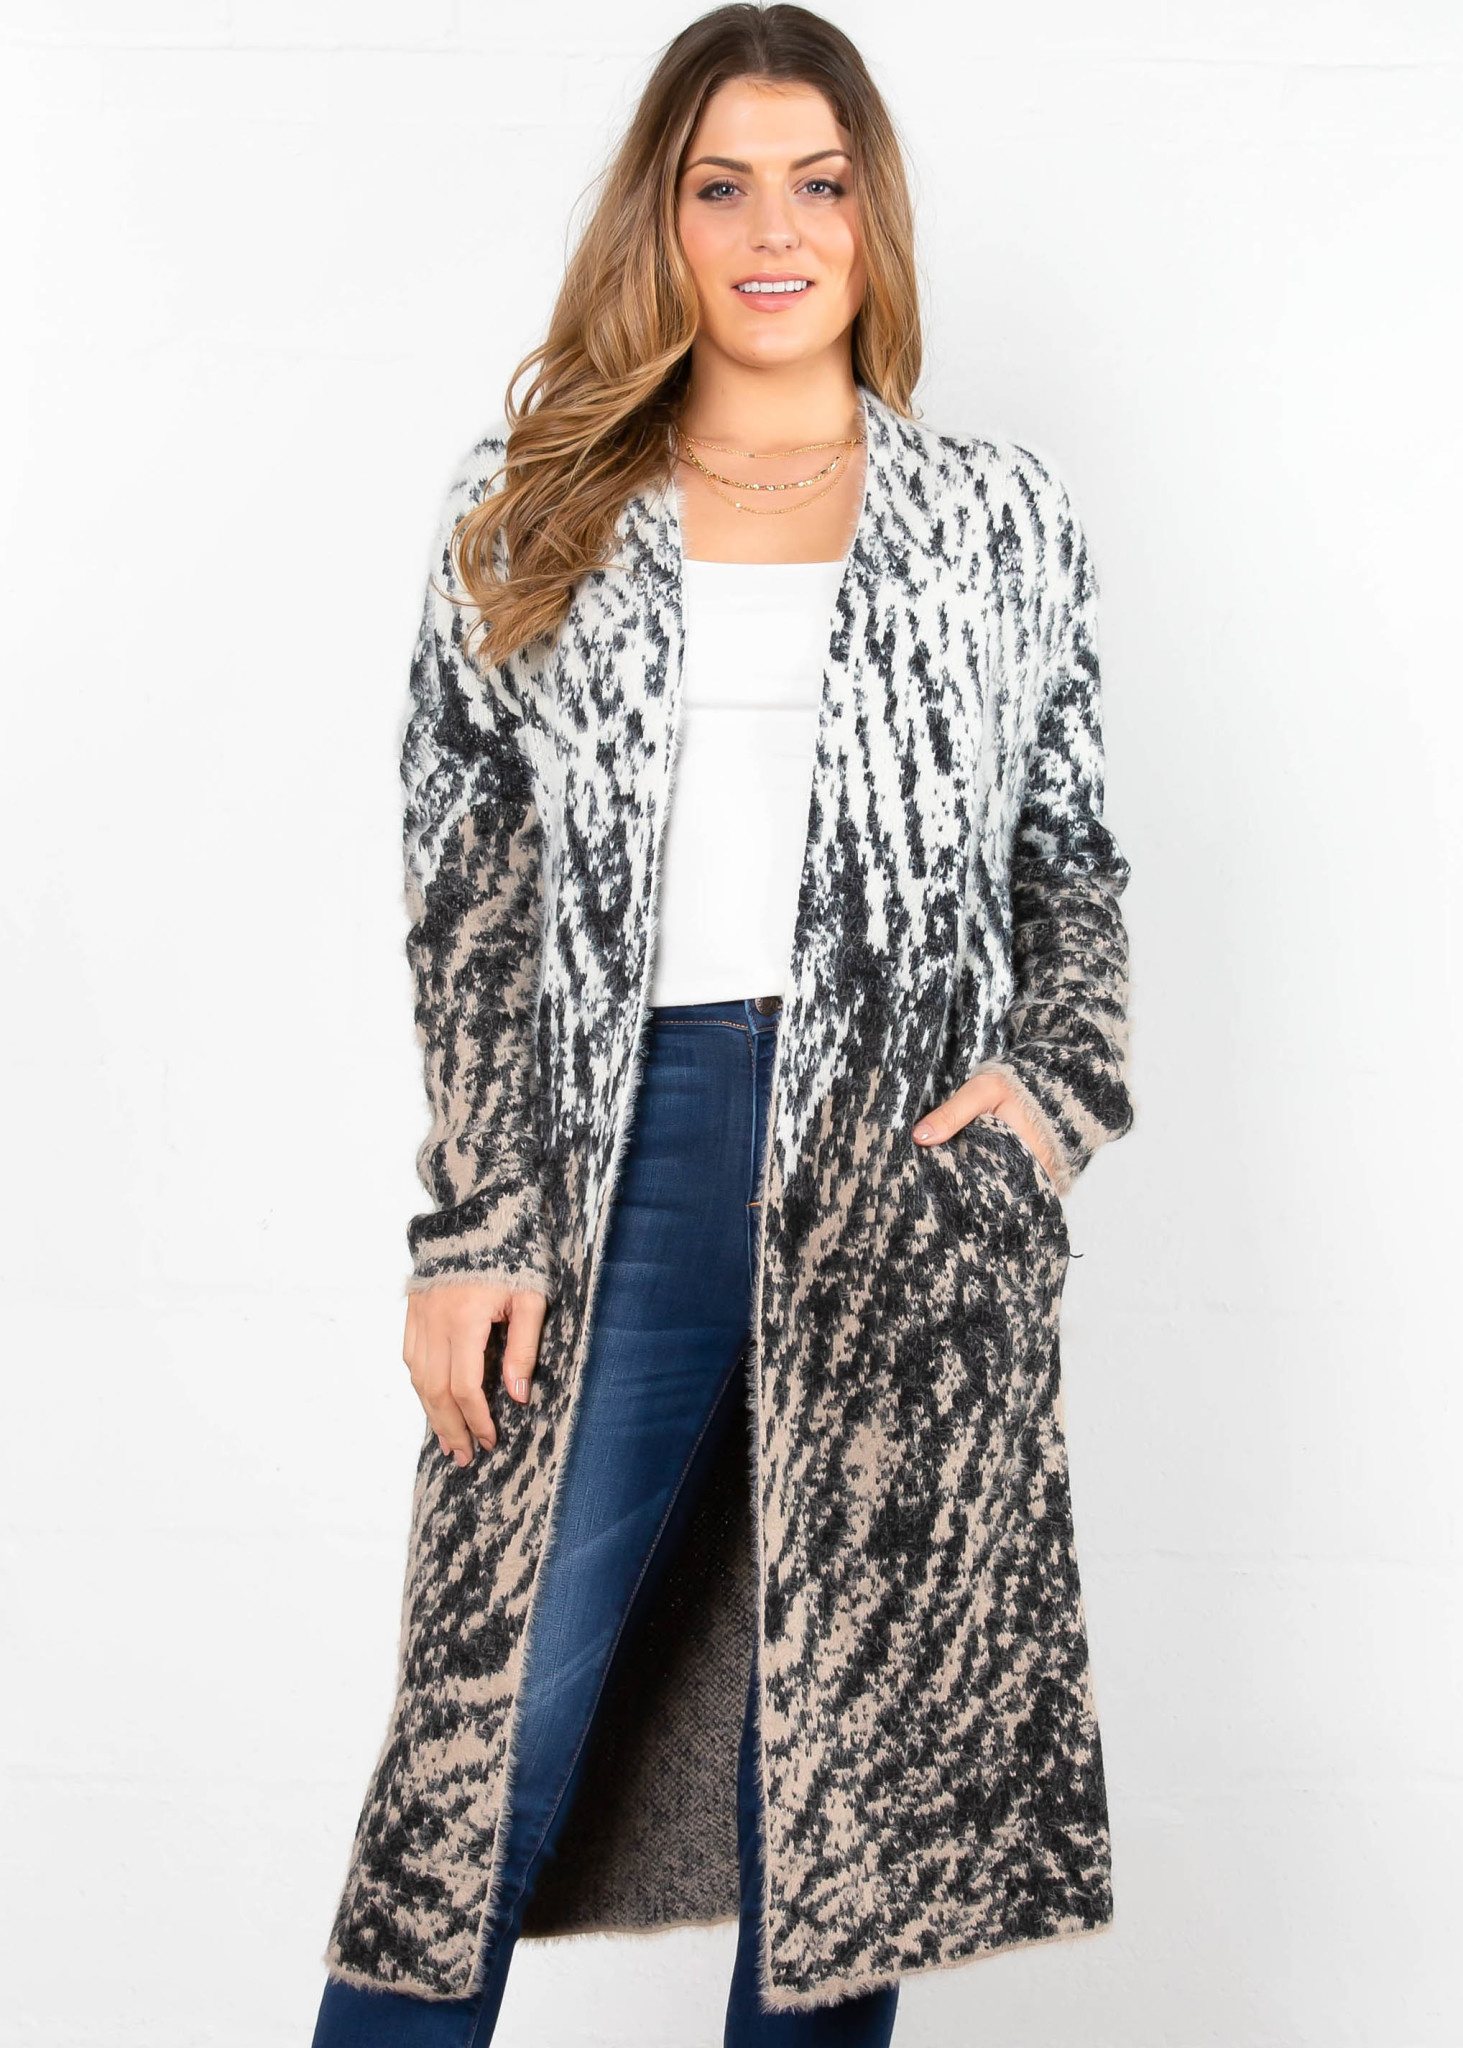 MOMENT OF LOVE PRINTED CARDIGAN